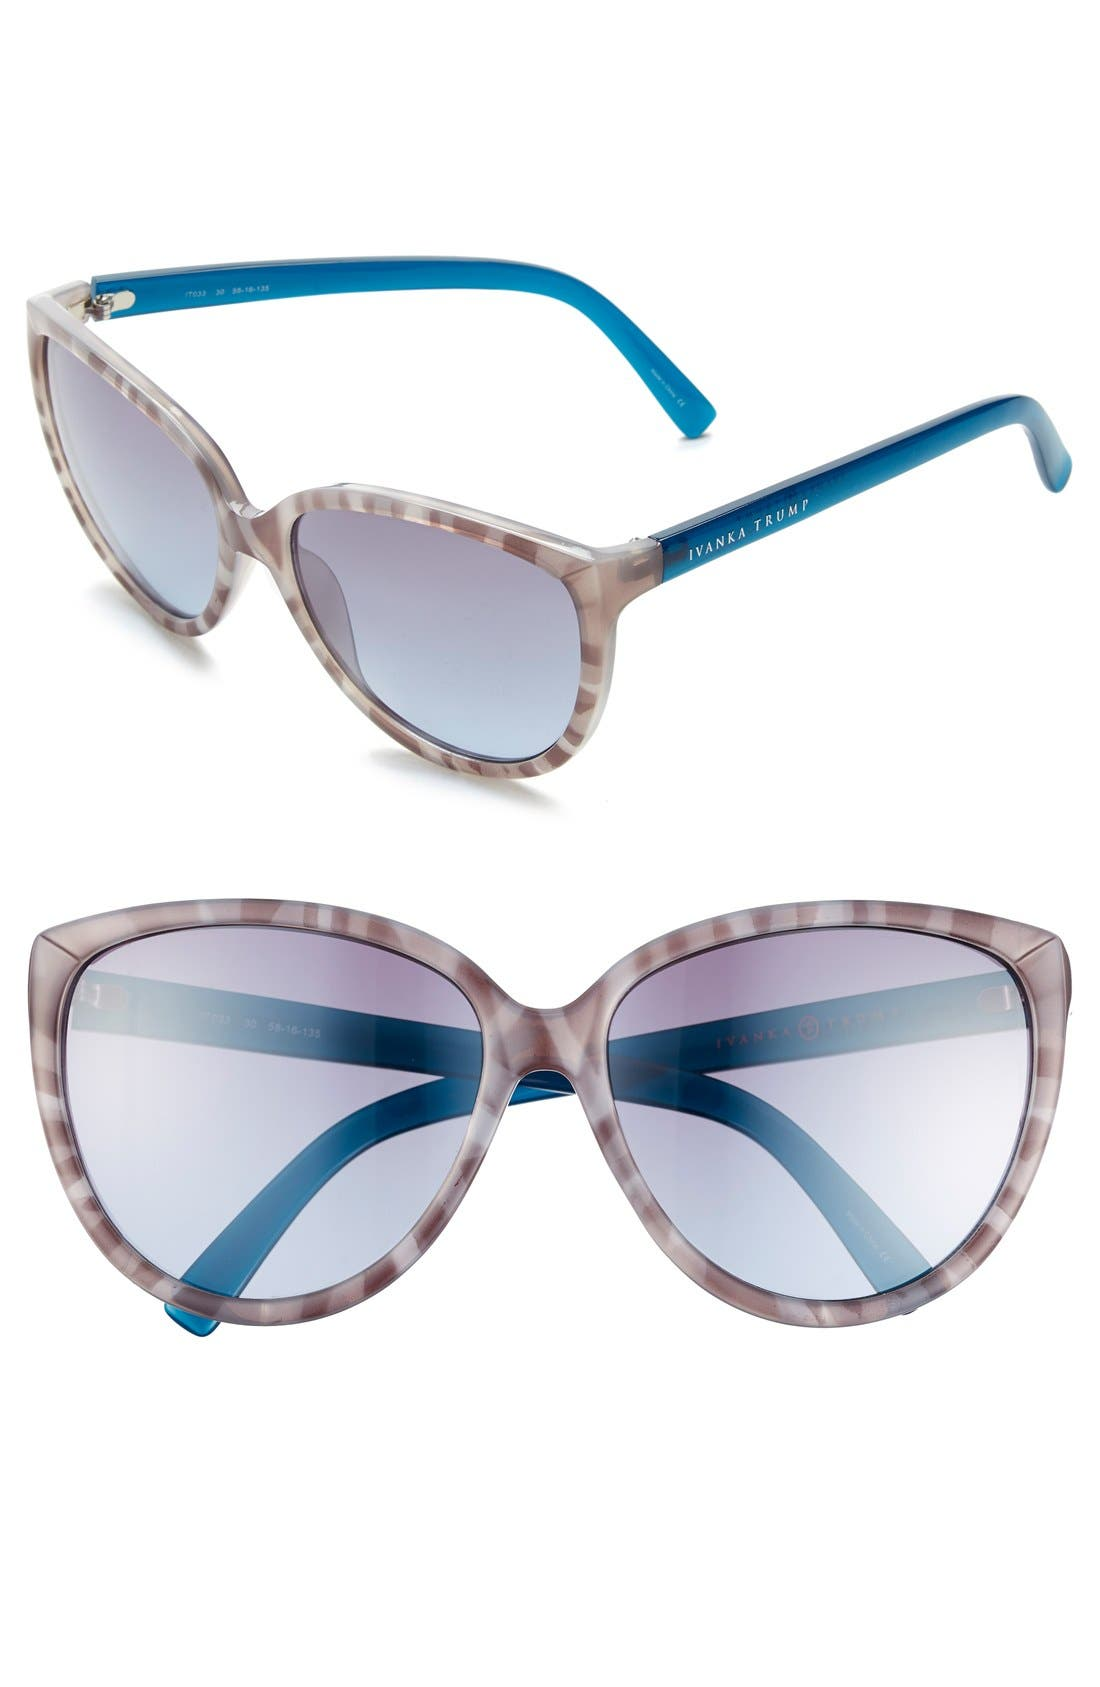 Main Image - Ivanka Trump 58mm Cat Eye Sunglasses